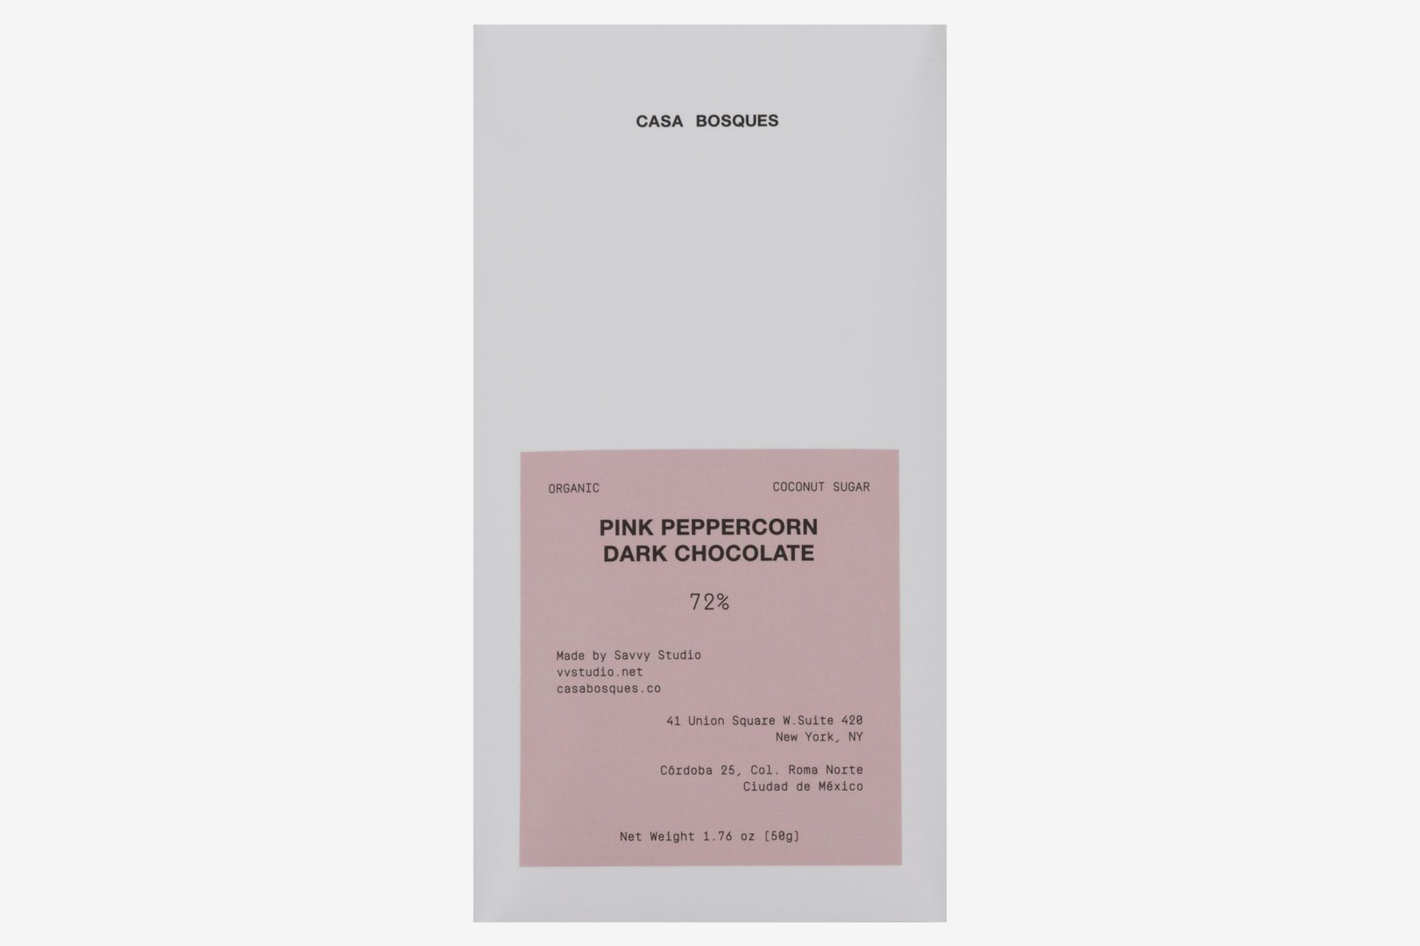 Casa Bosques Pink Peppercorn Chocolate